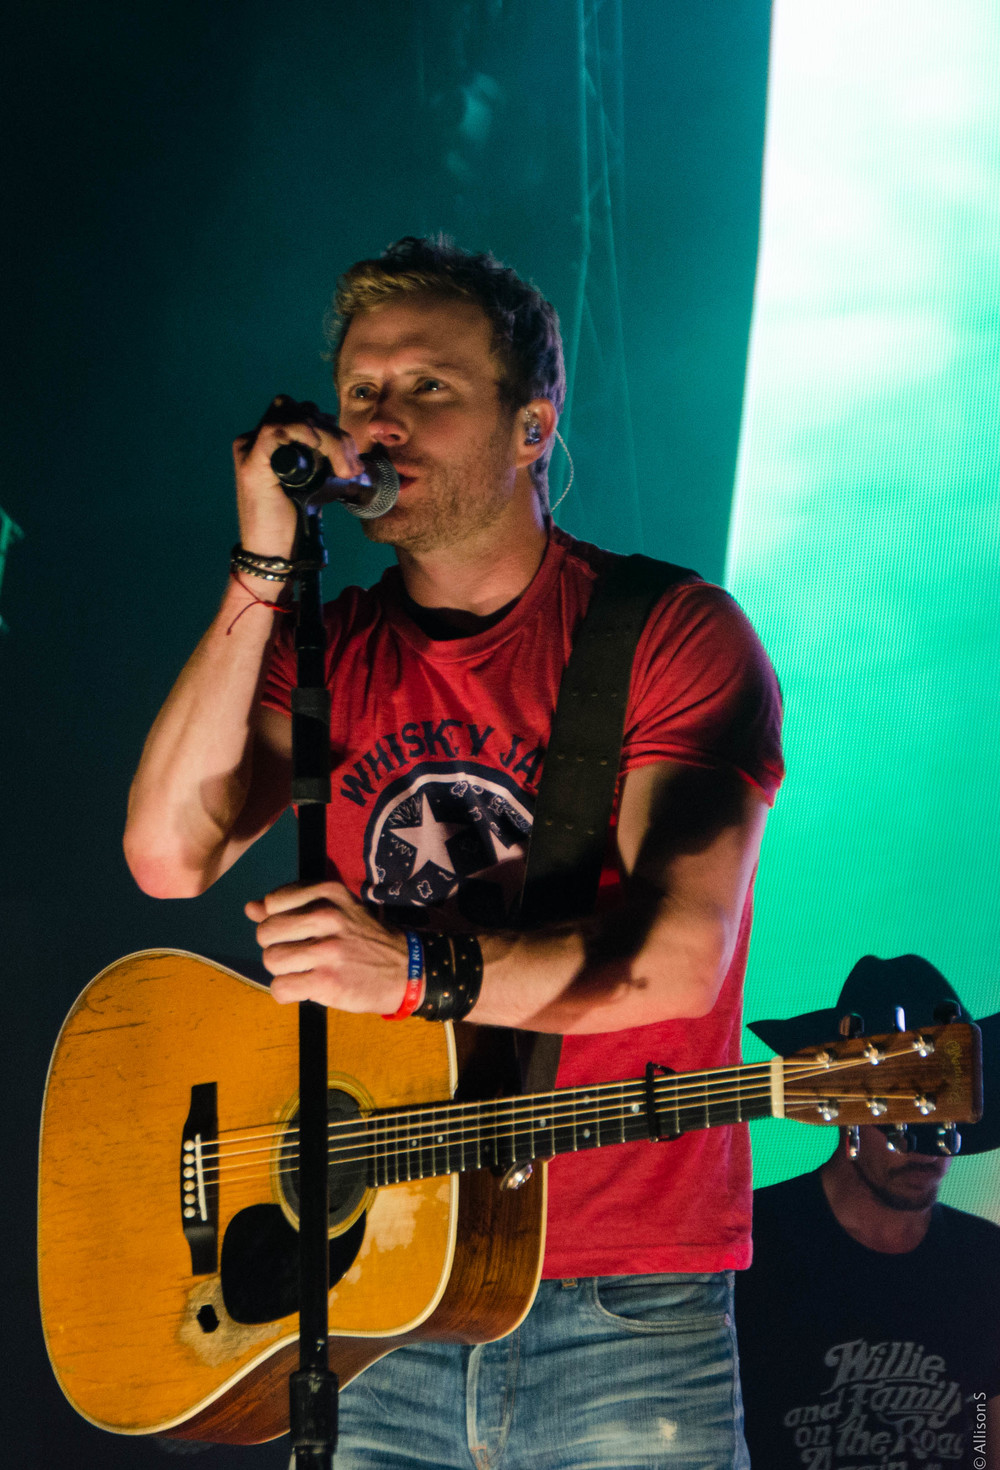 dierks-bentley_14407123802_o.jpg